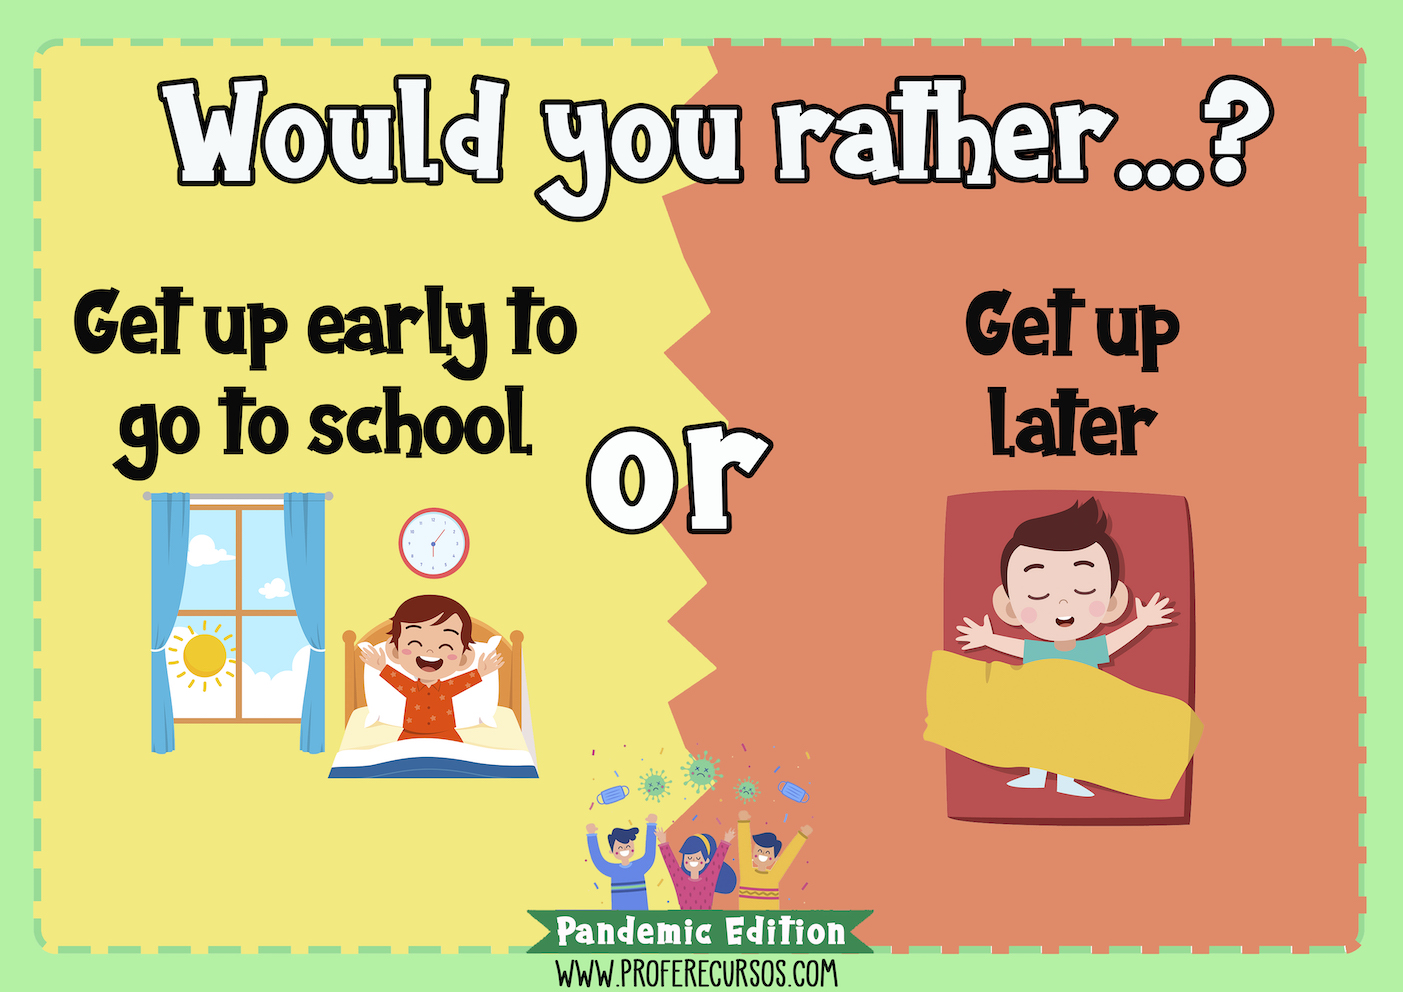 Would you rather speaking game for children